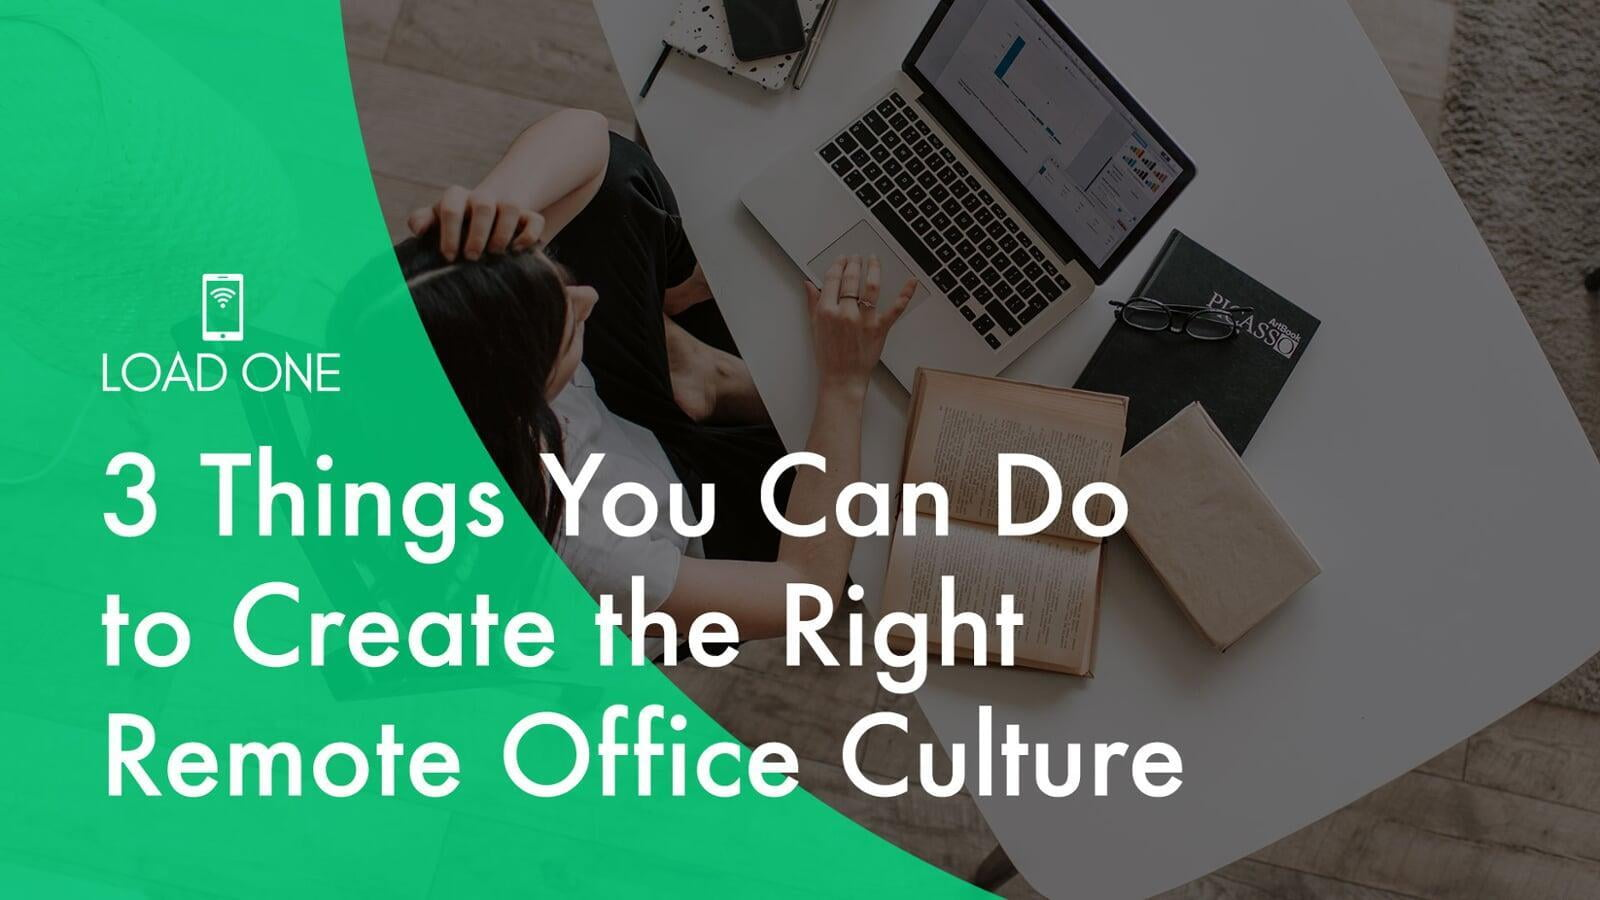 3 Things You Can Do to Create the Right Remote Office Culture